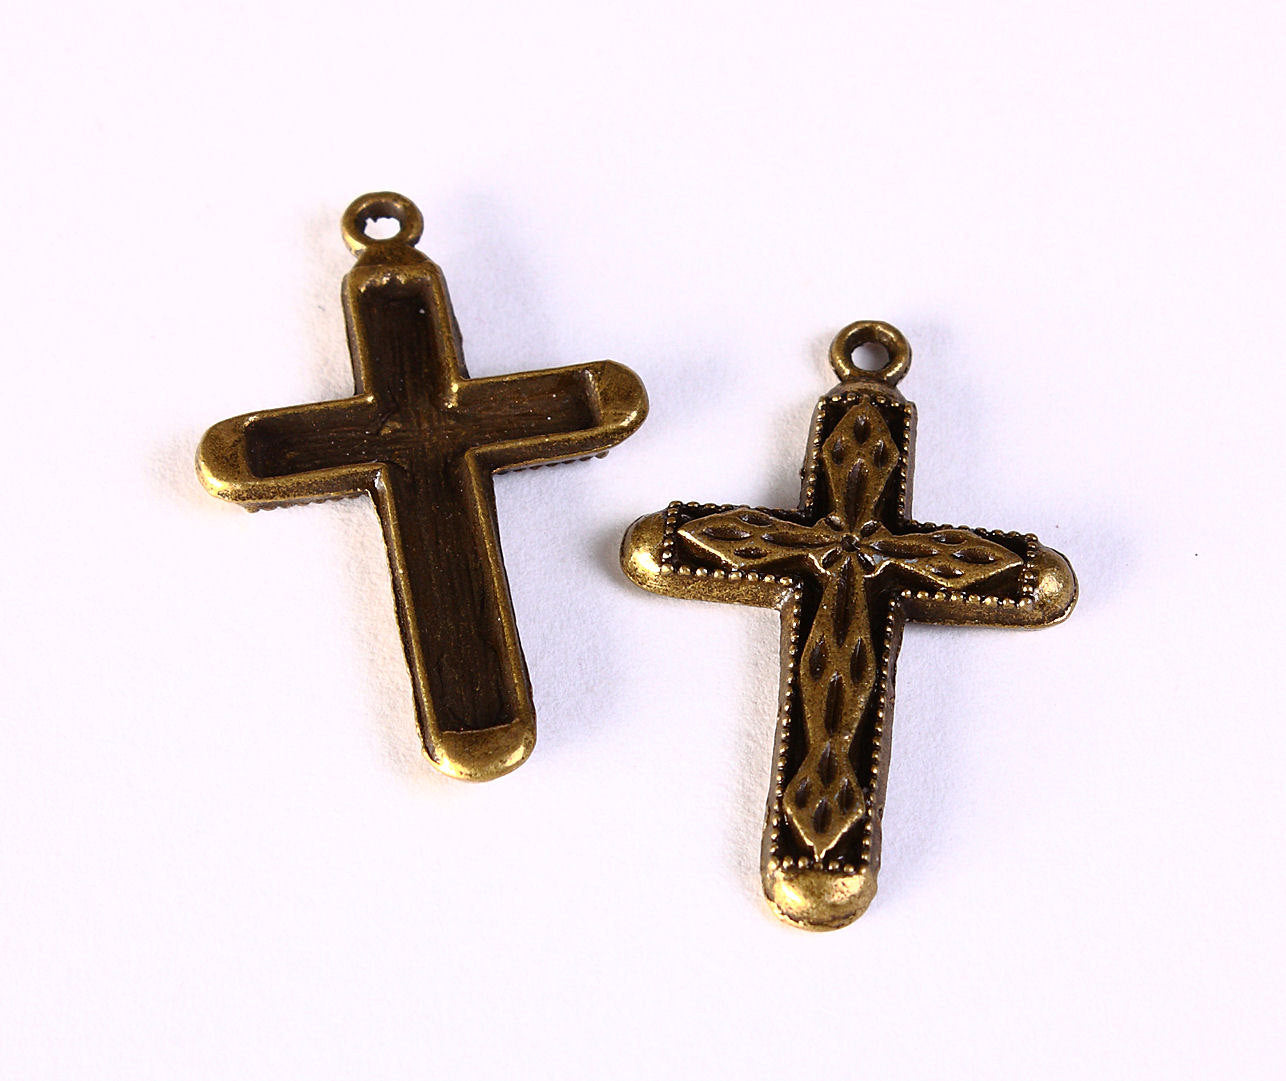 Cross pendant - antique brass cross charms - rosary jewelry supply - Cross for Rosary - 31mm x 20mm - 6 pieces (1215)